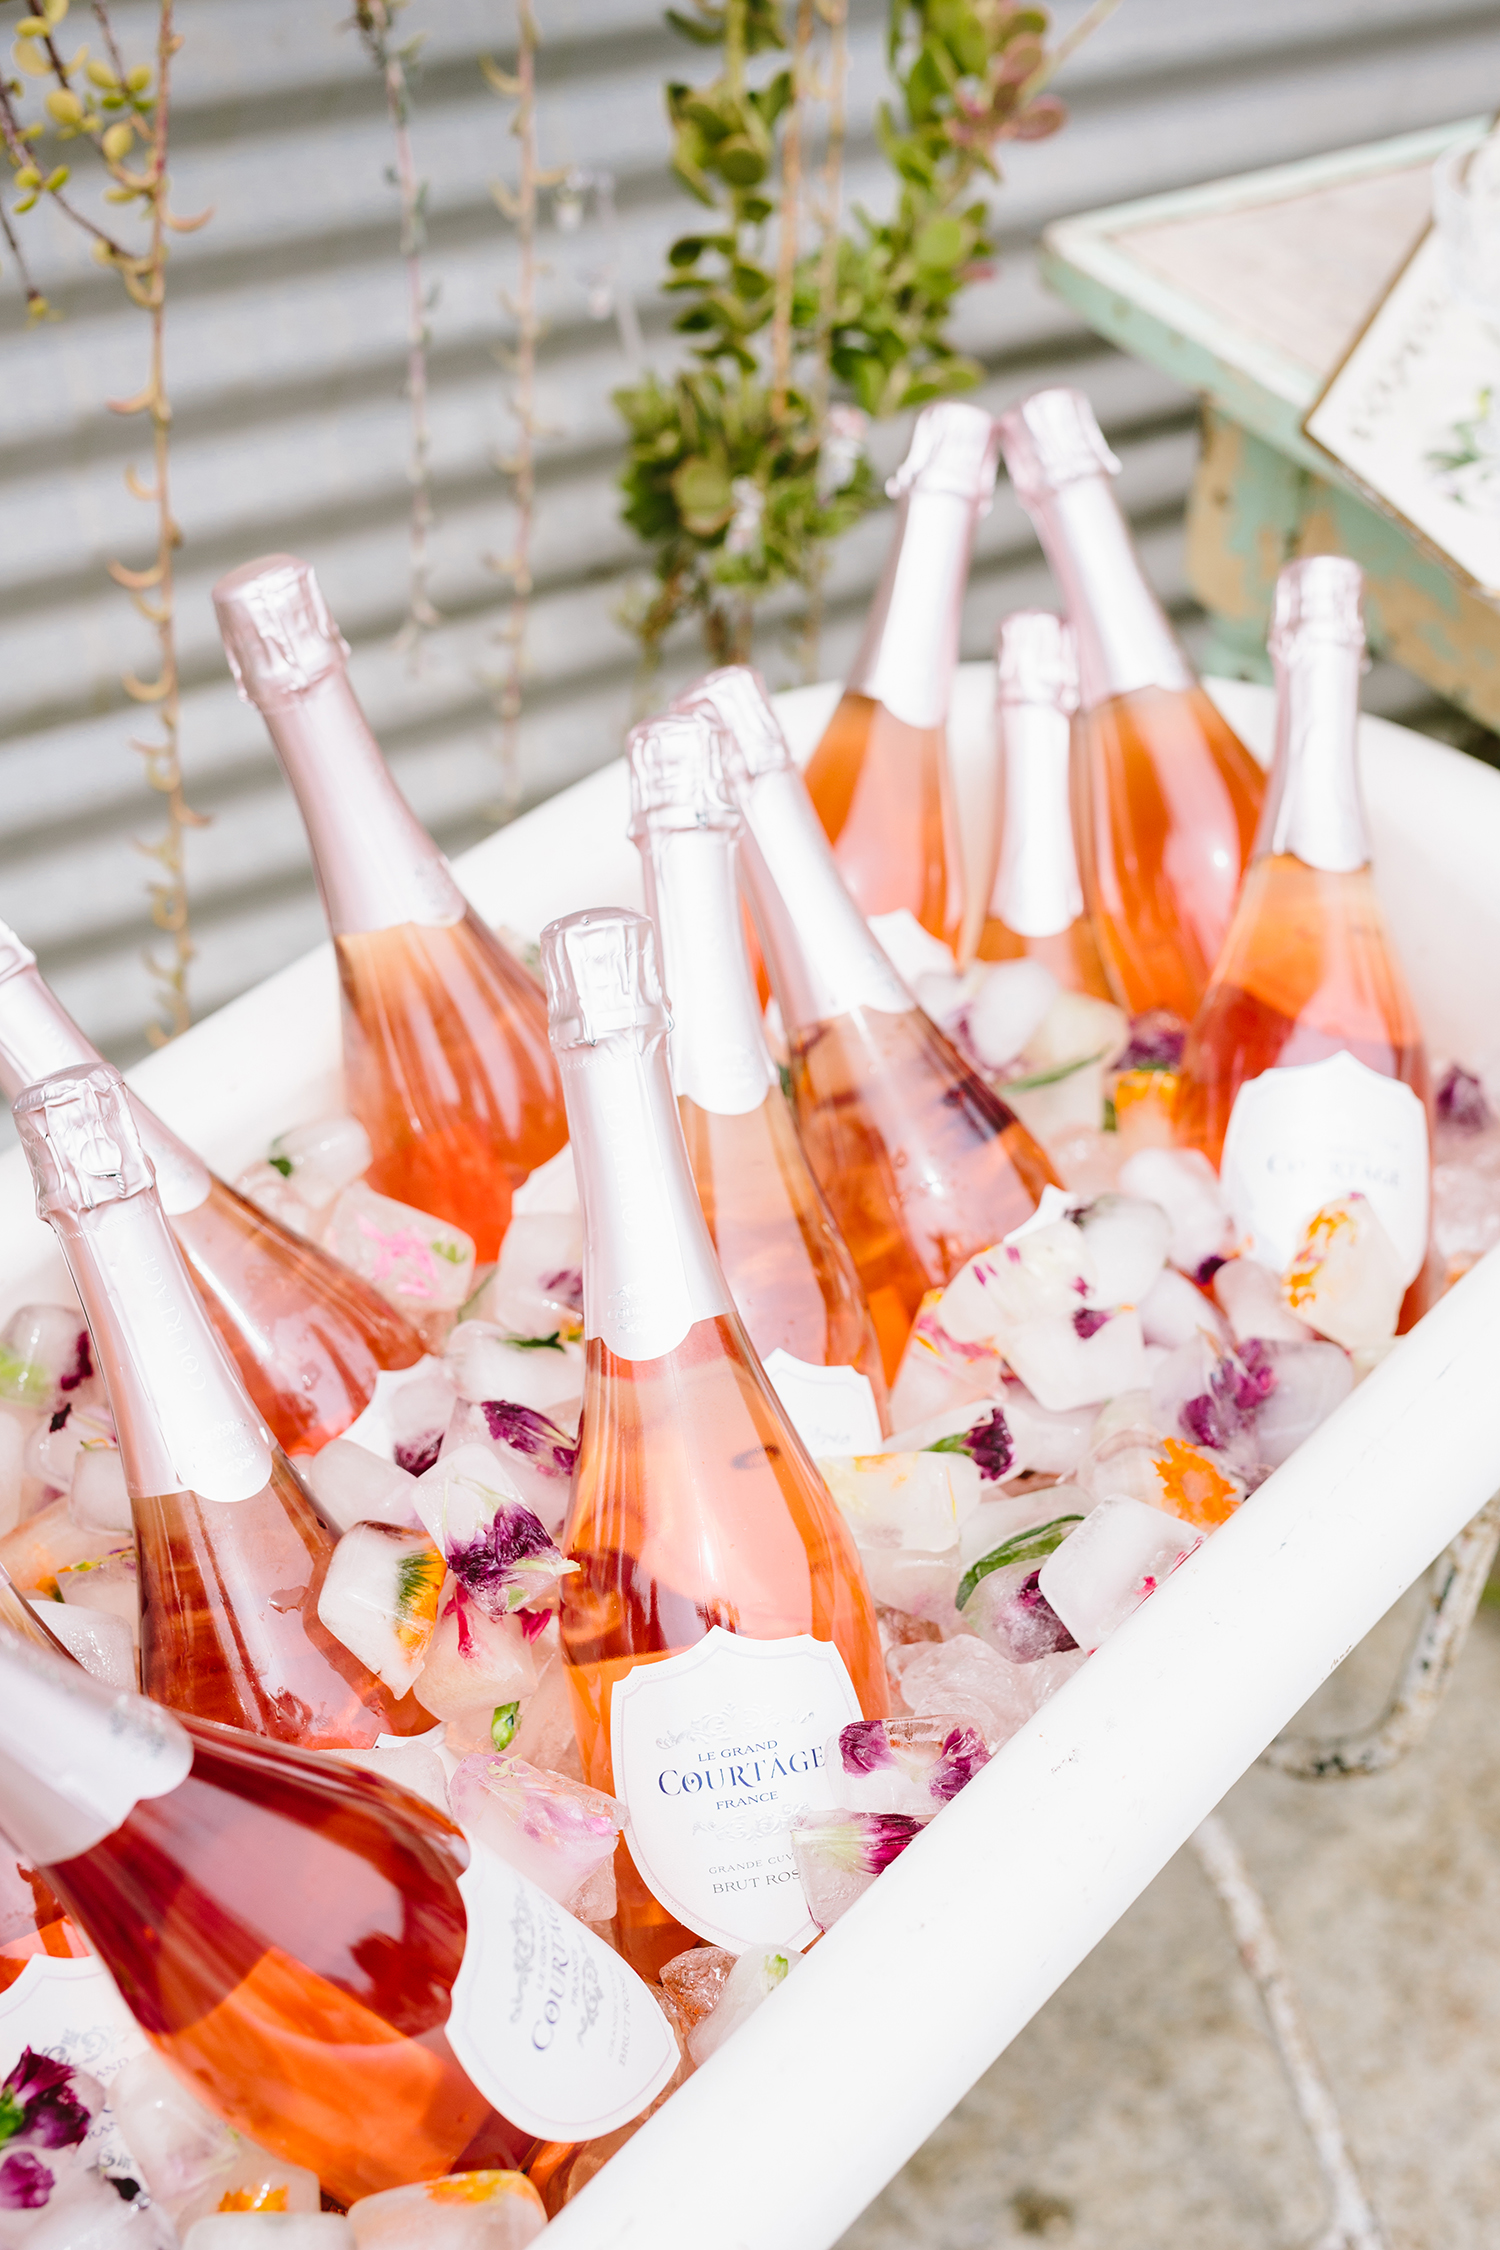 rose bottles in tub with floral ice cubes